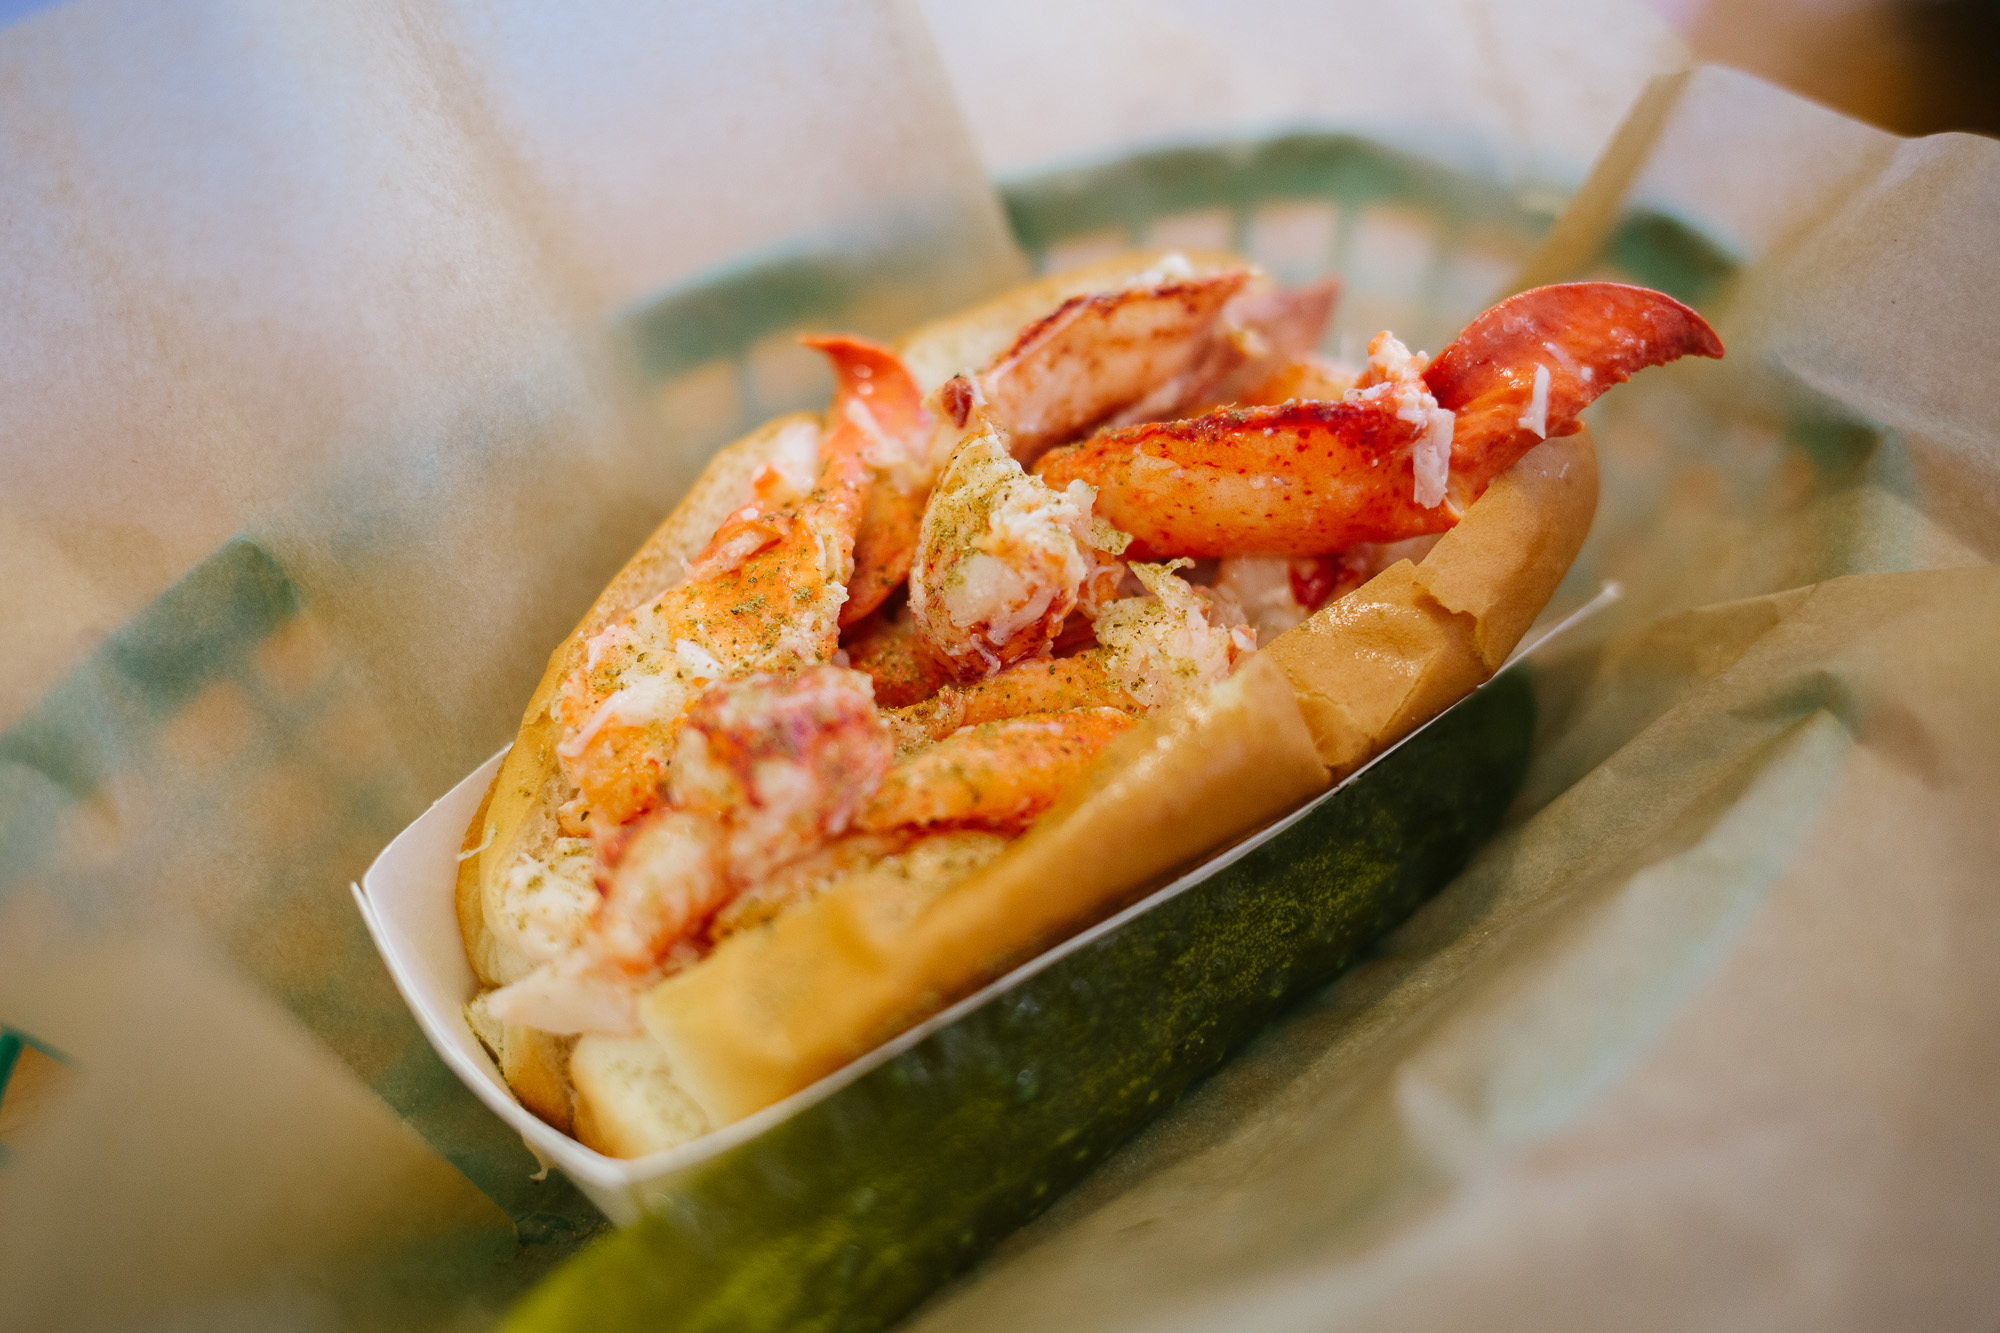 The Best Places To Eat In The Financial District - New York, NY - The Infatuation